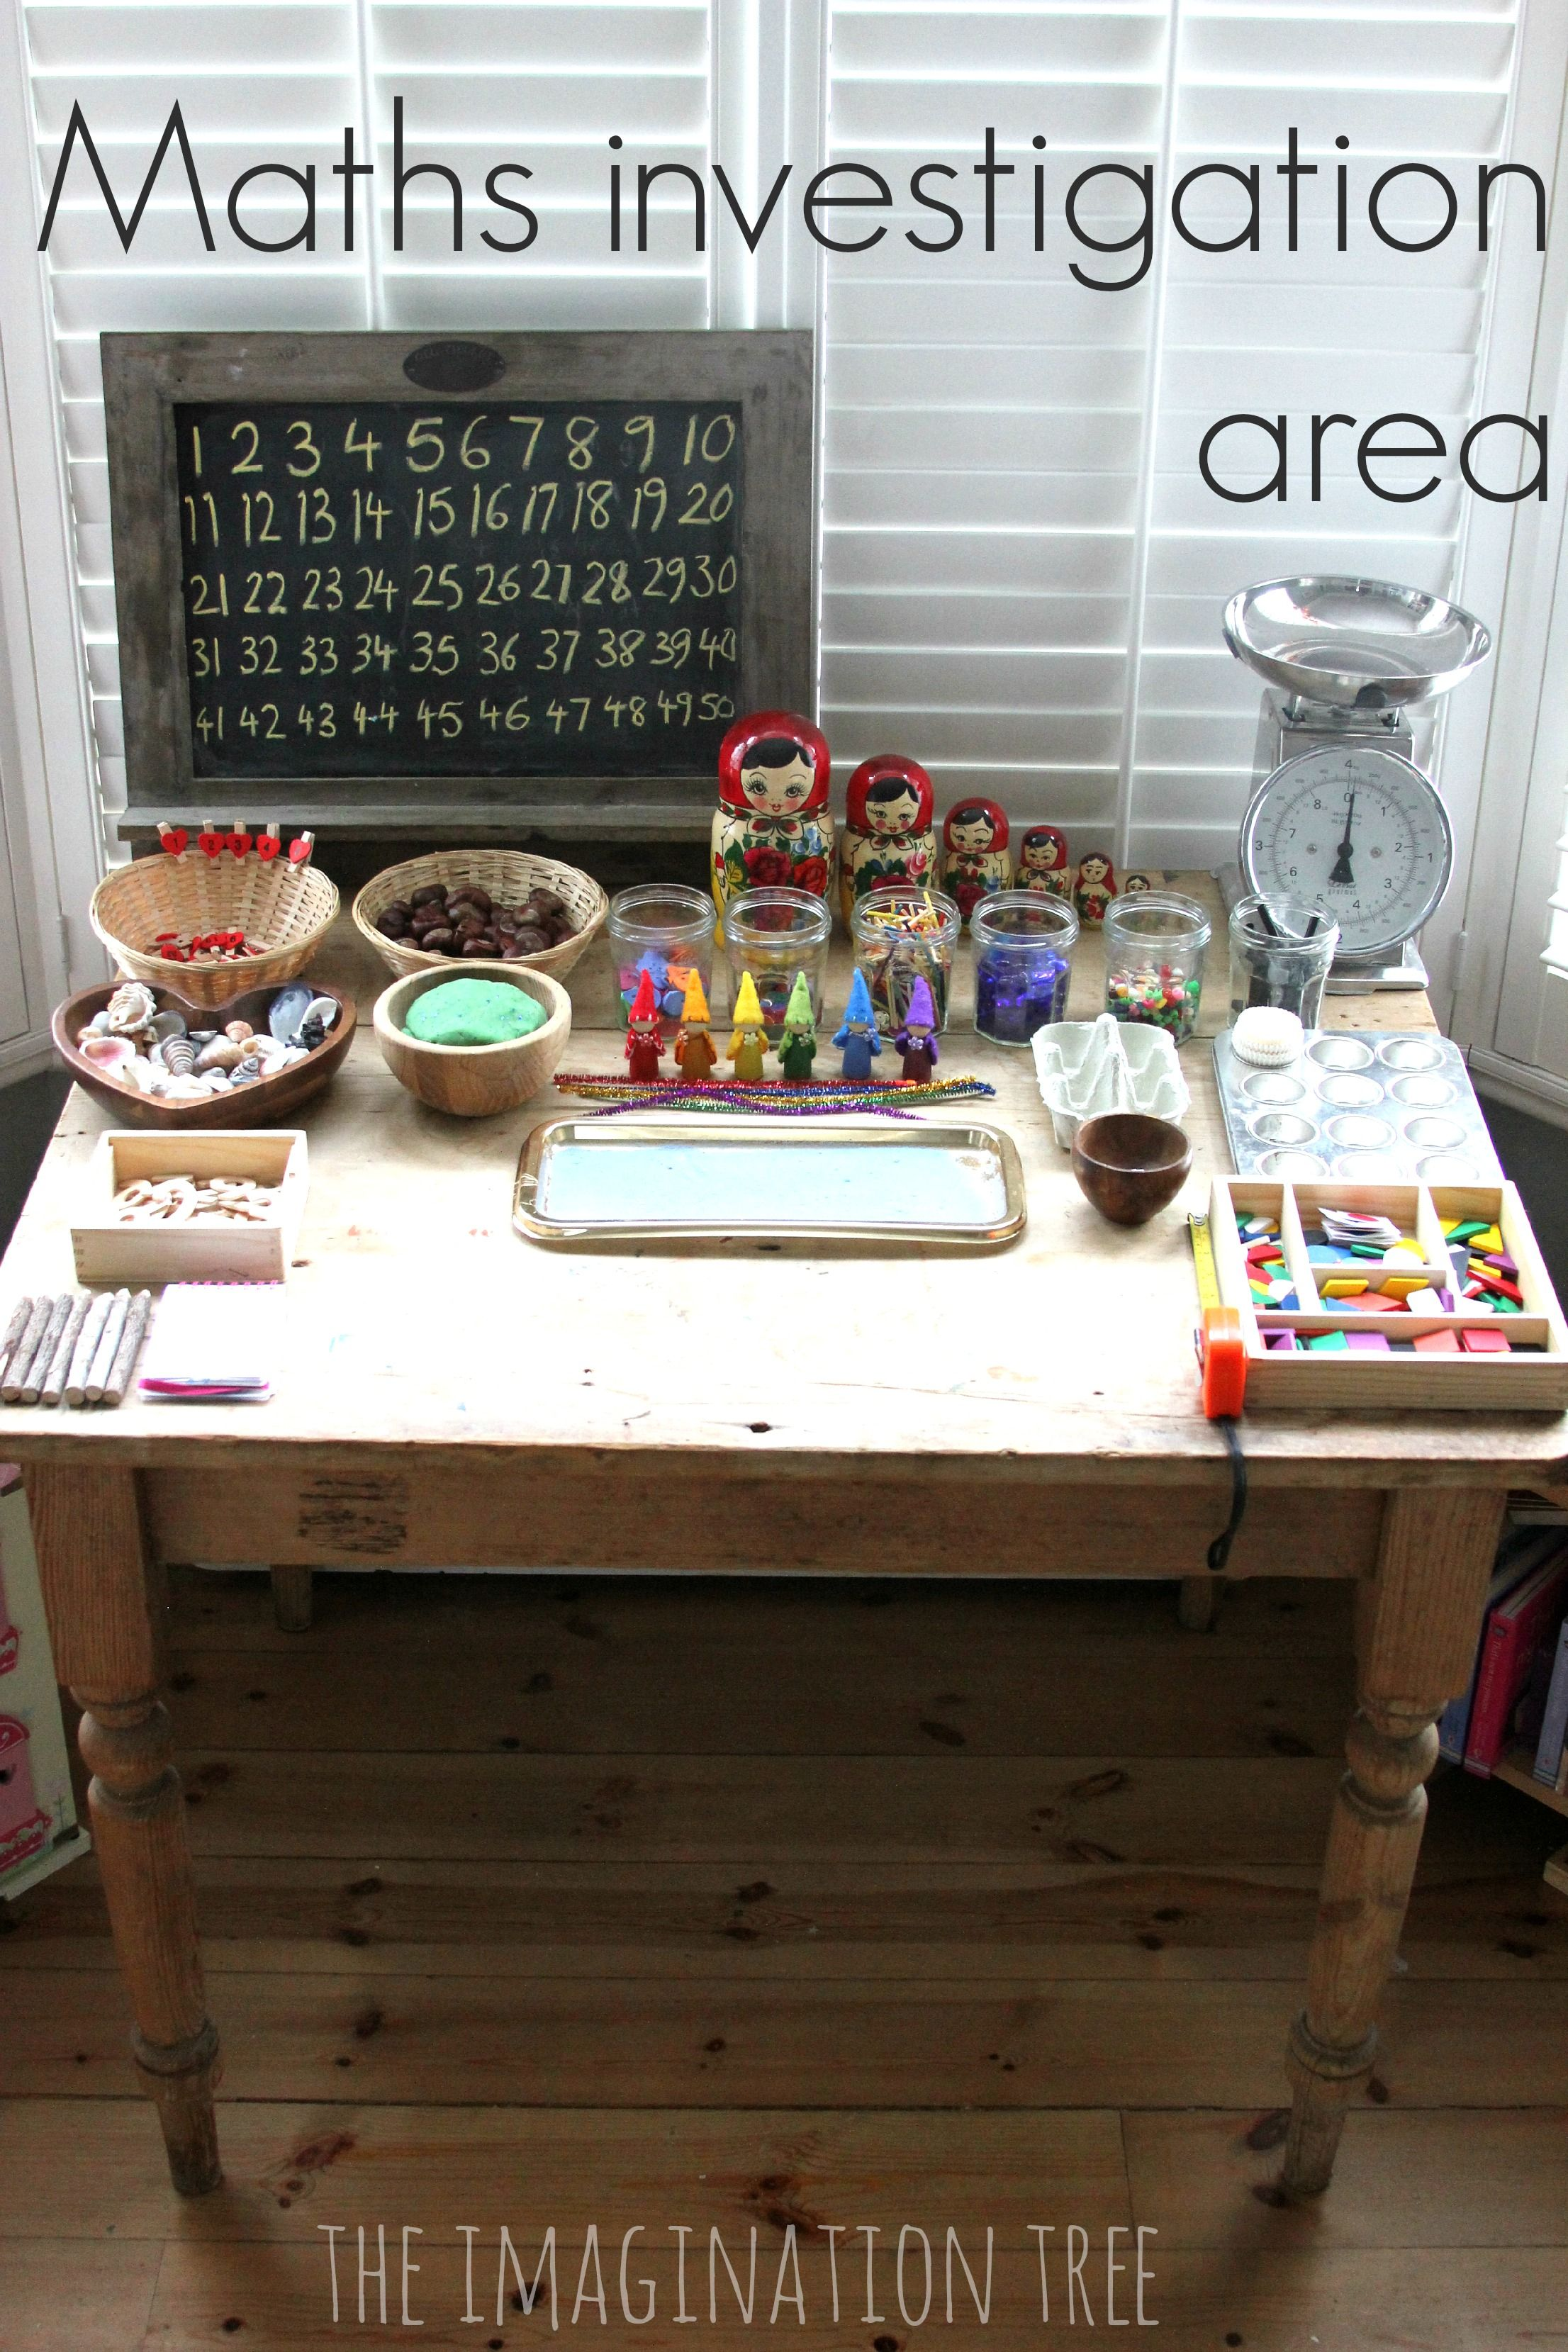 Maths Investigation Area for Open-Ended Learning #preschoolclassroomsetup